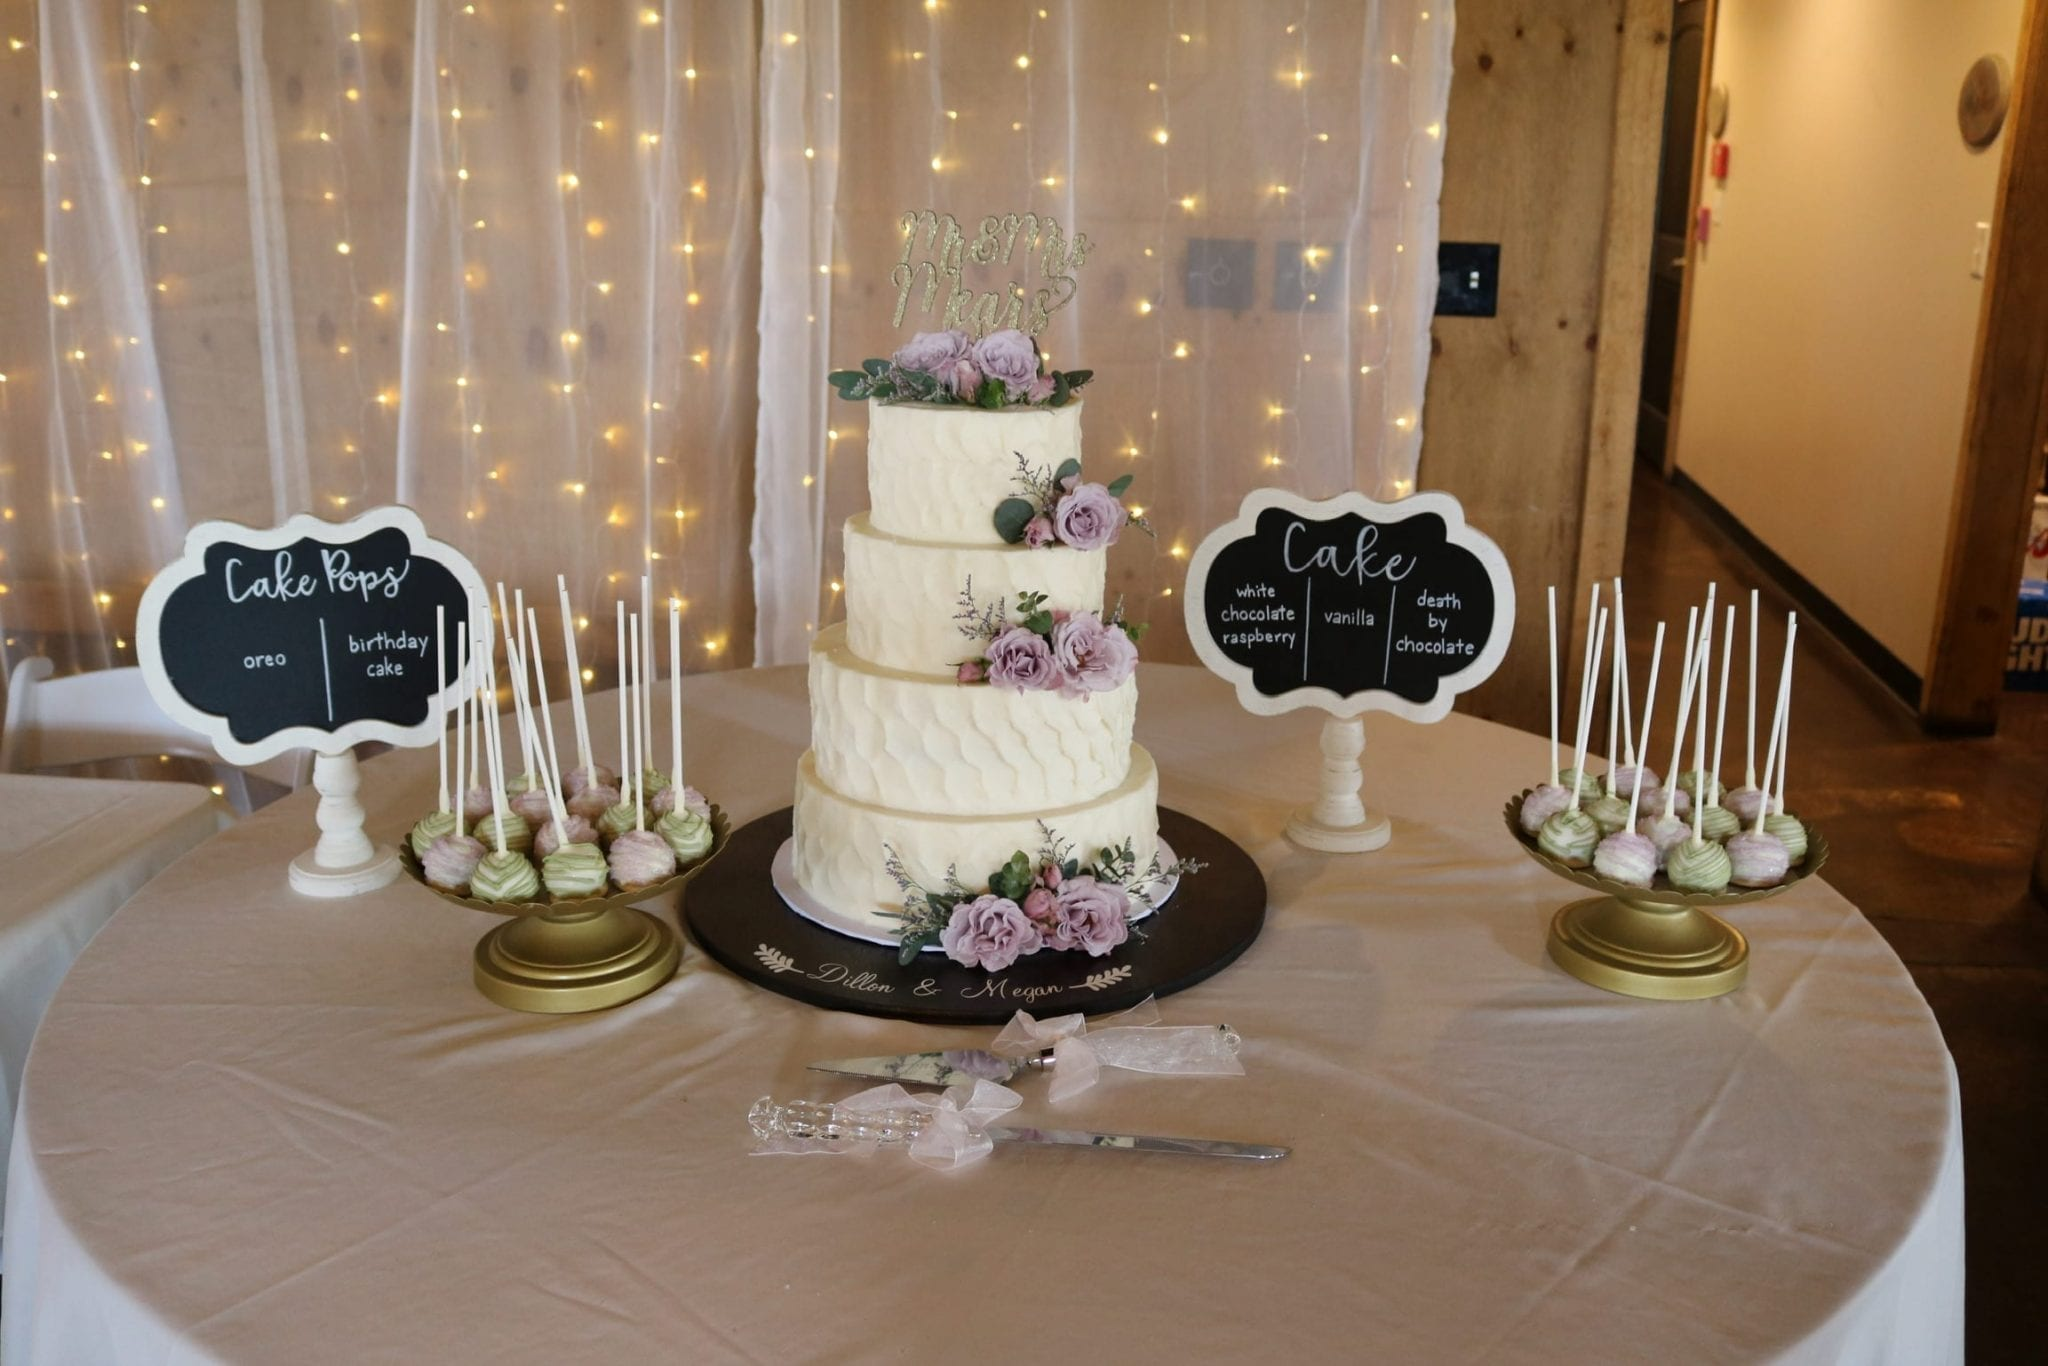 Textured Wedding Cake and Cake Pops with Lavender Flowers | 3 Sweet Girls Cakery